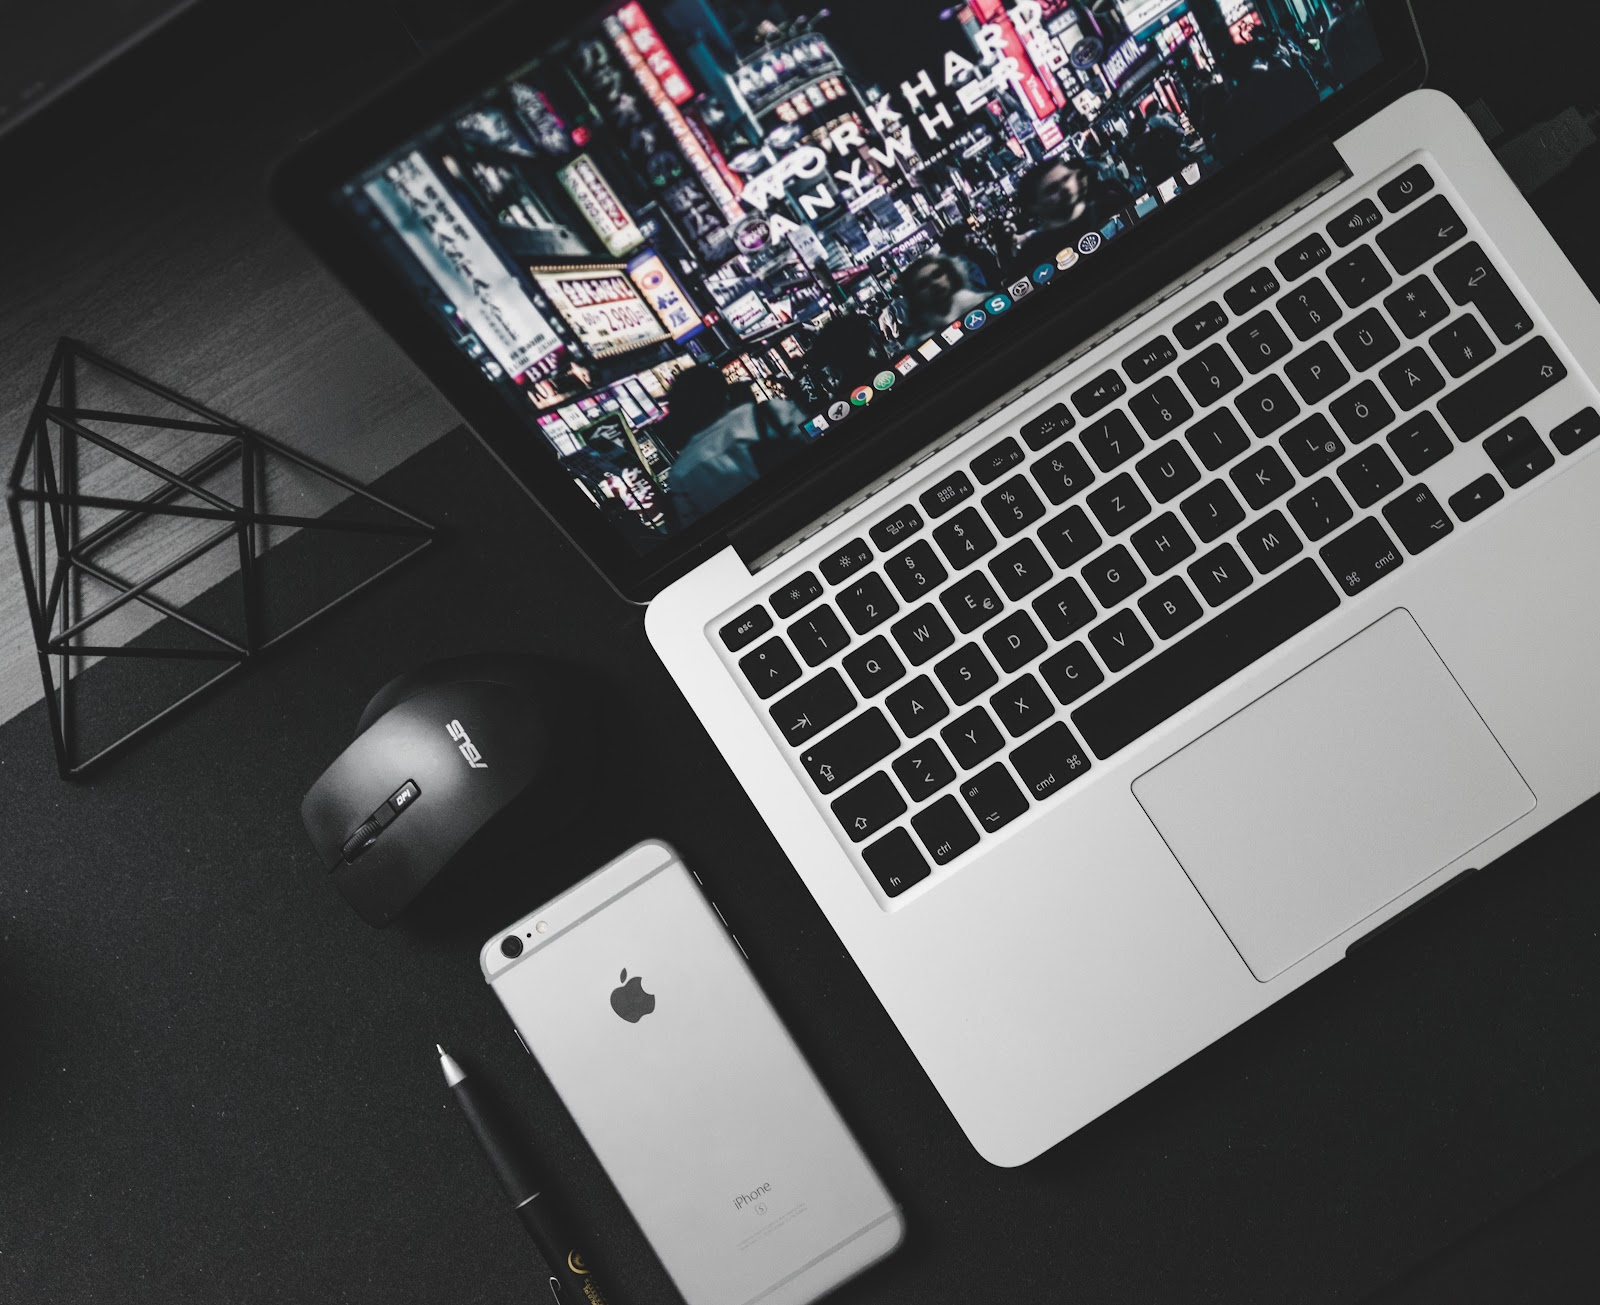 How To Earn A Steady Income From Blogging - Laptop and iPhone